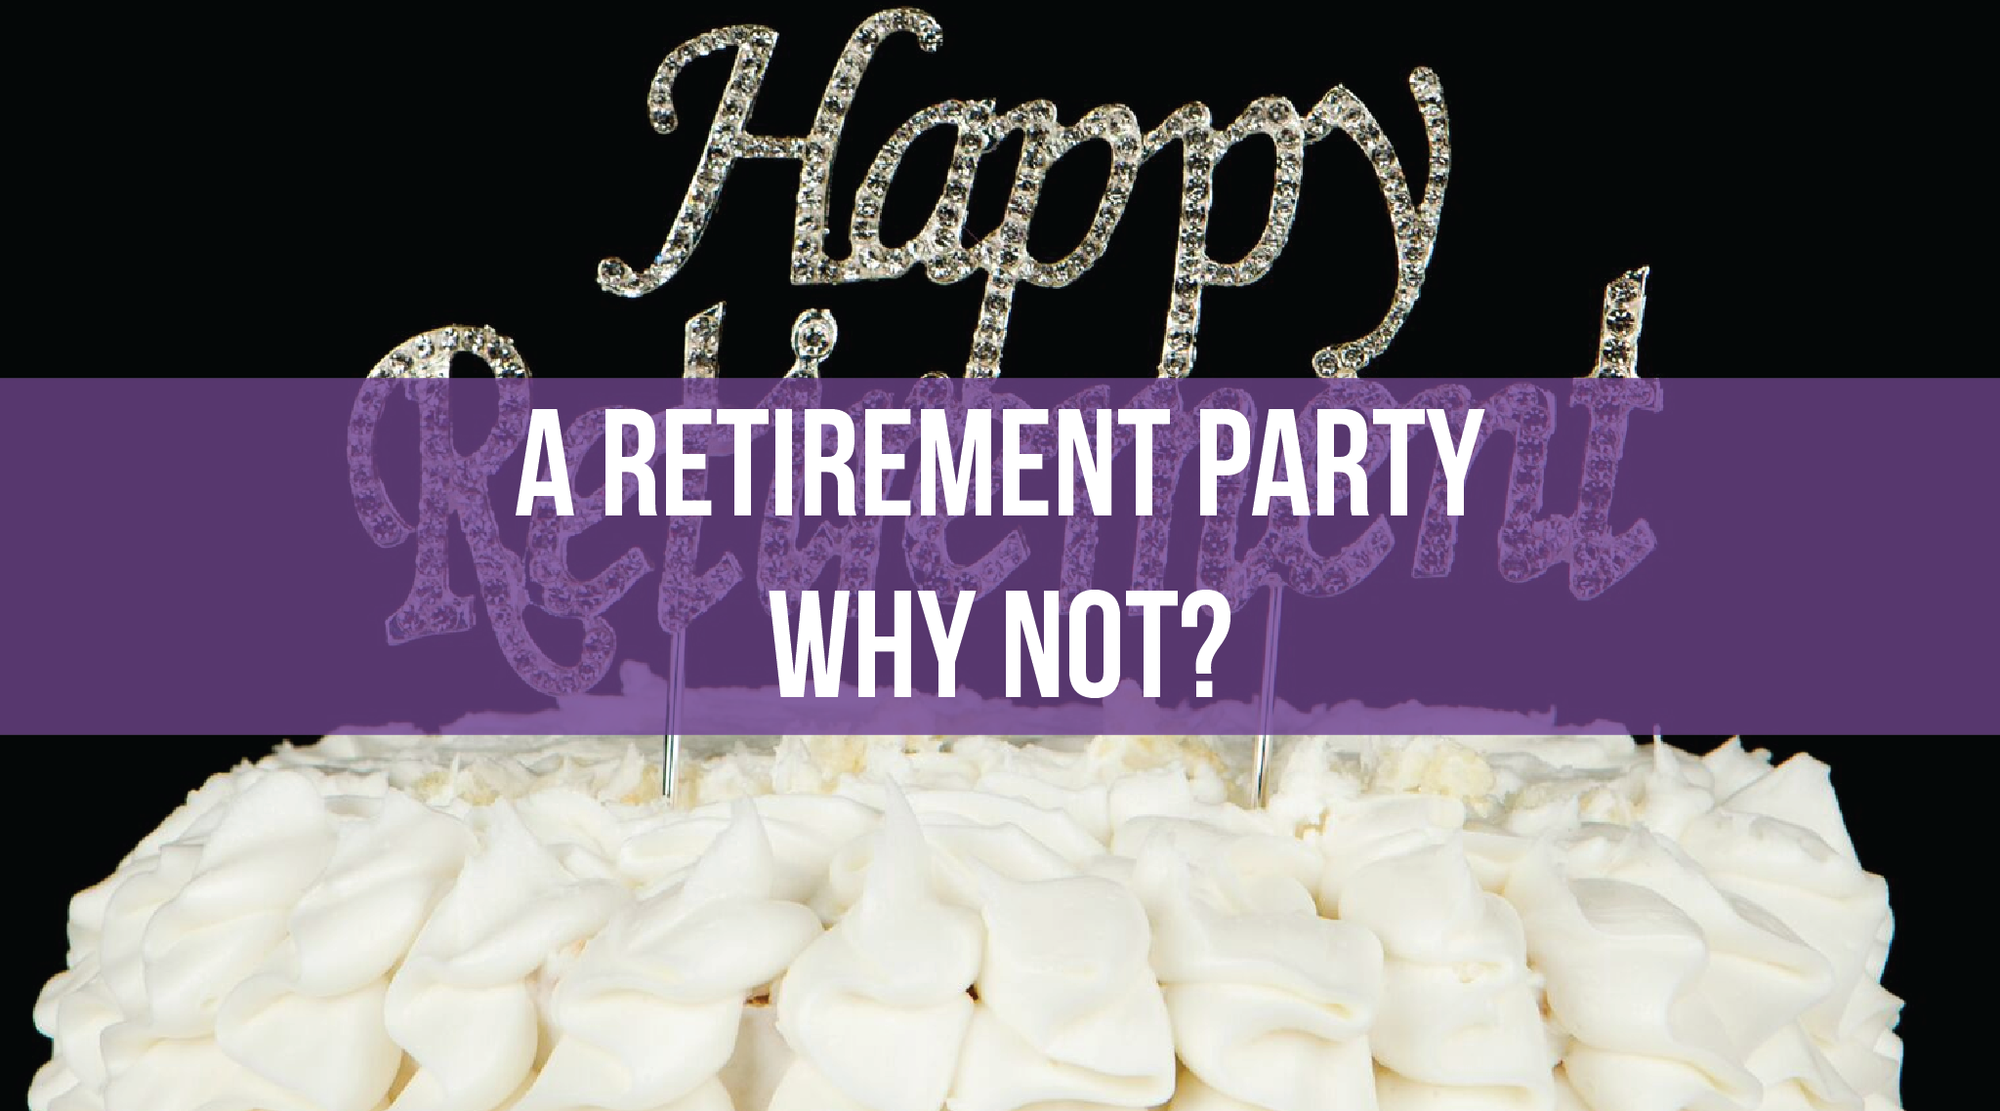 A Retirement Party - Why Not?